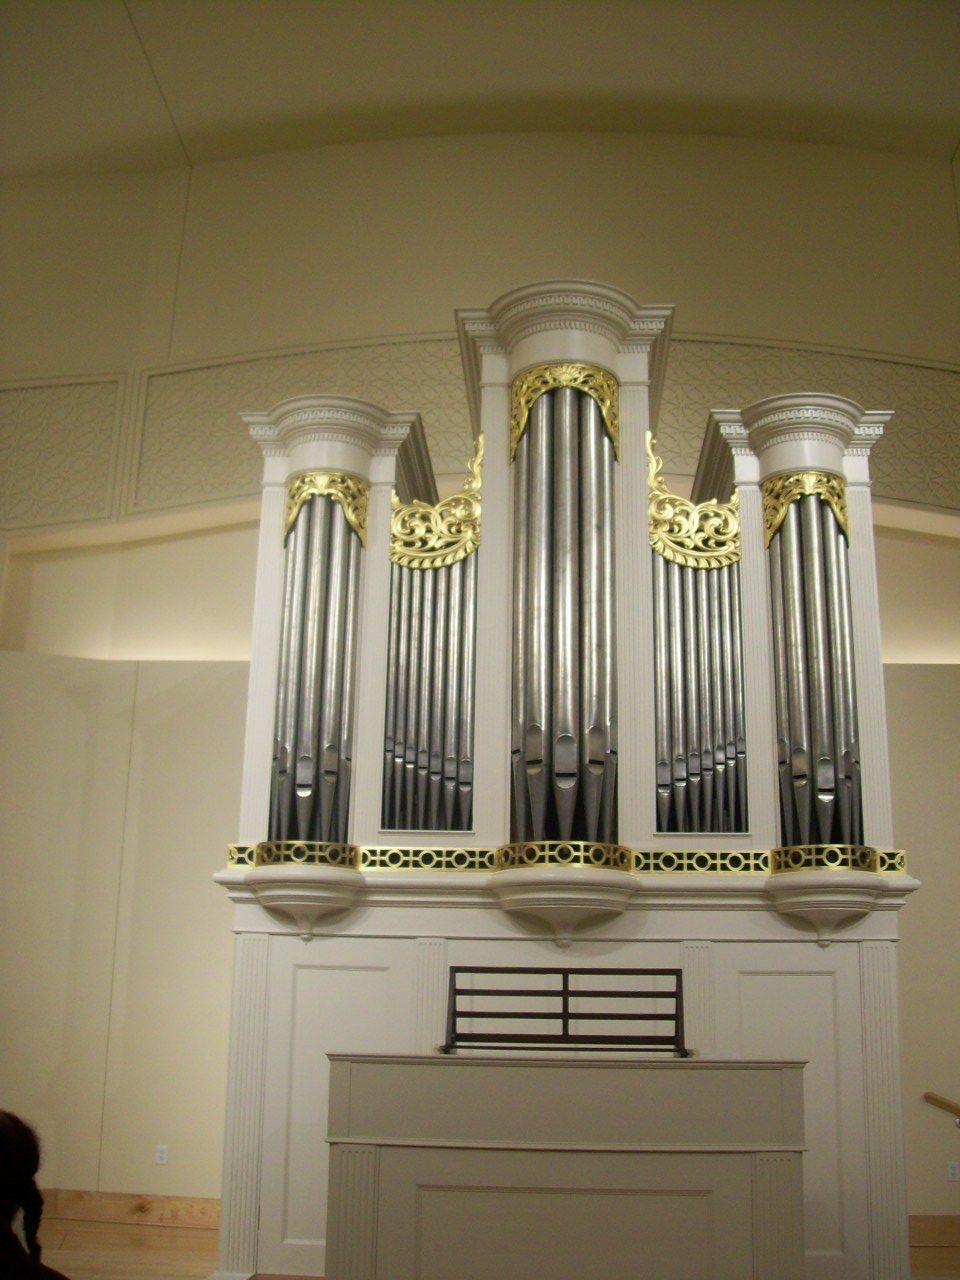 Downtown winston salem blog the bigger the pipes the for Classic house organ sound